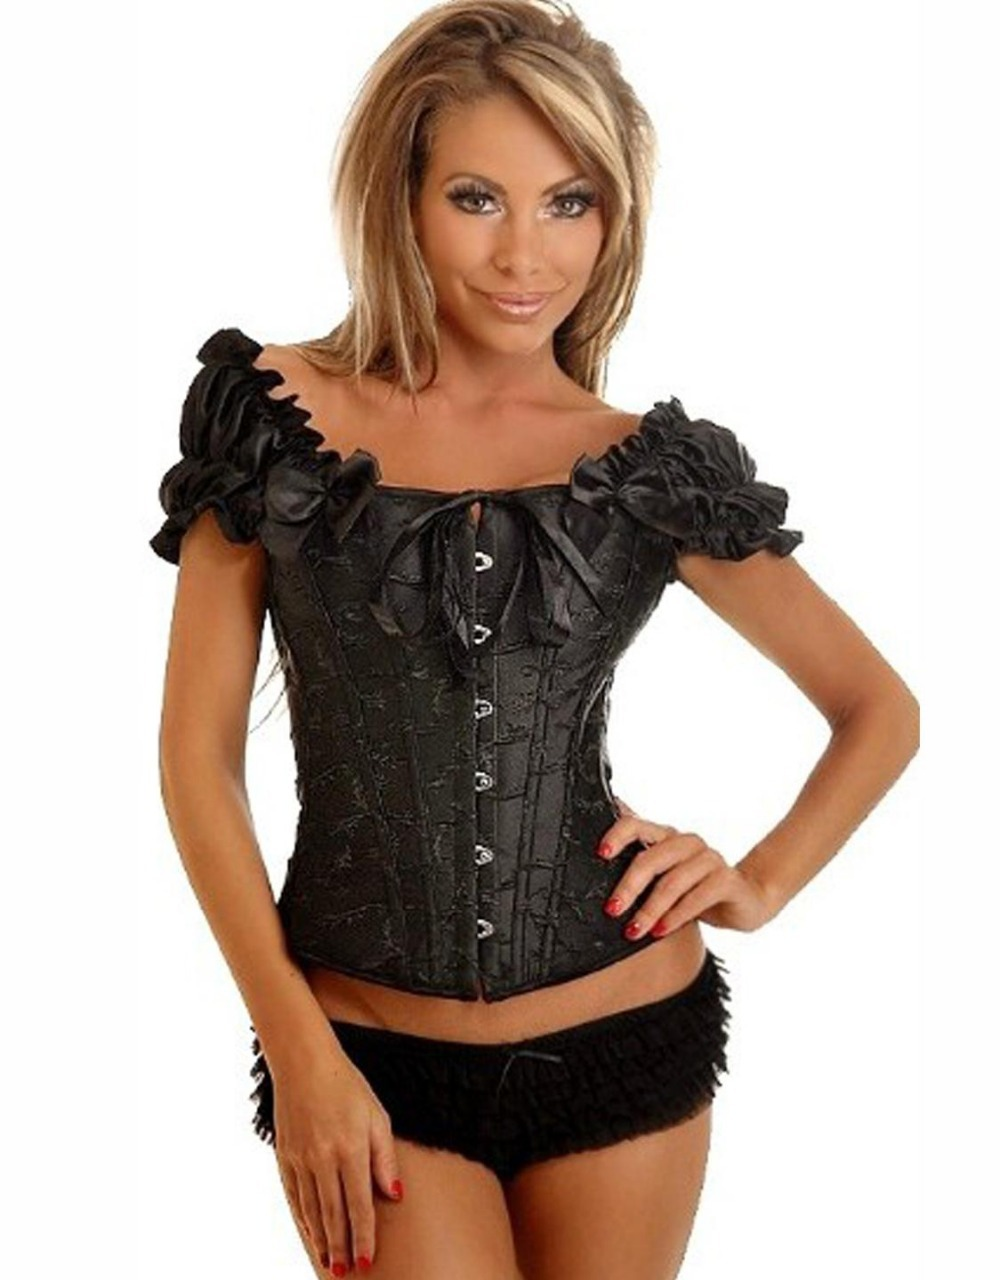 style sexy affordable online shops bustier sizes